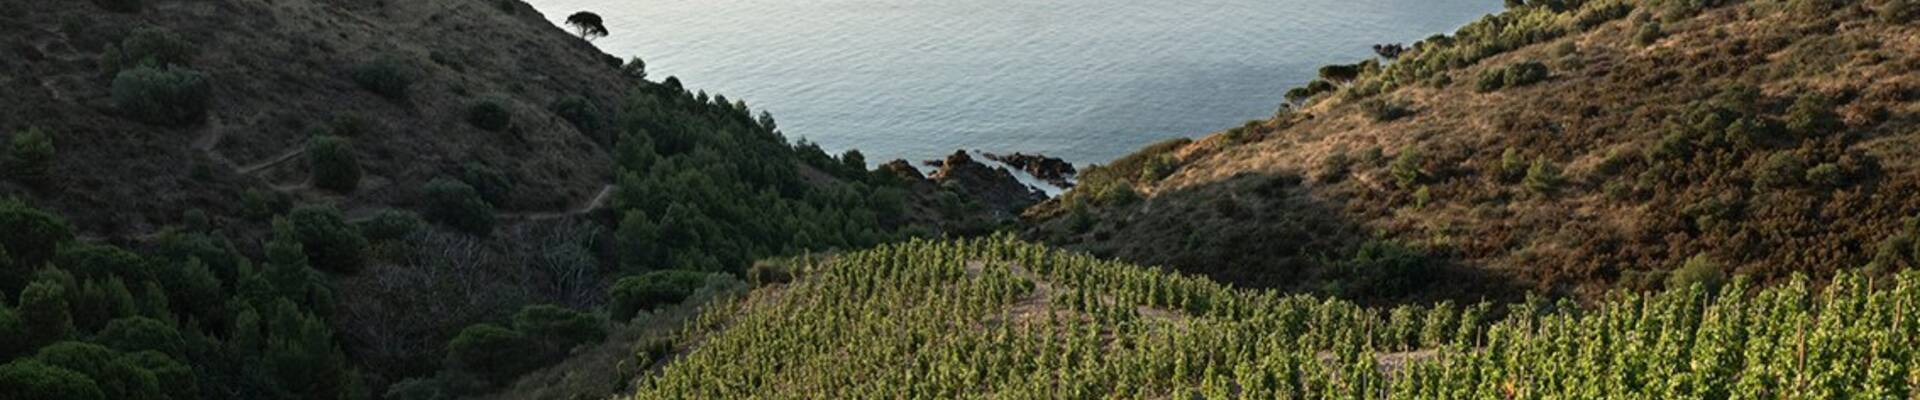 DISCOVER OUR ORGANIC WINES